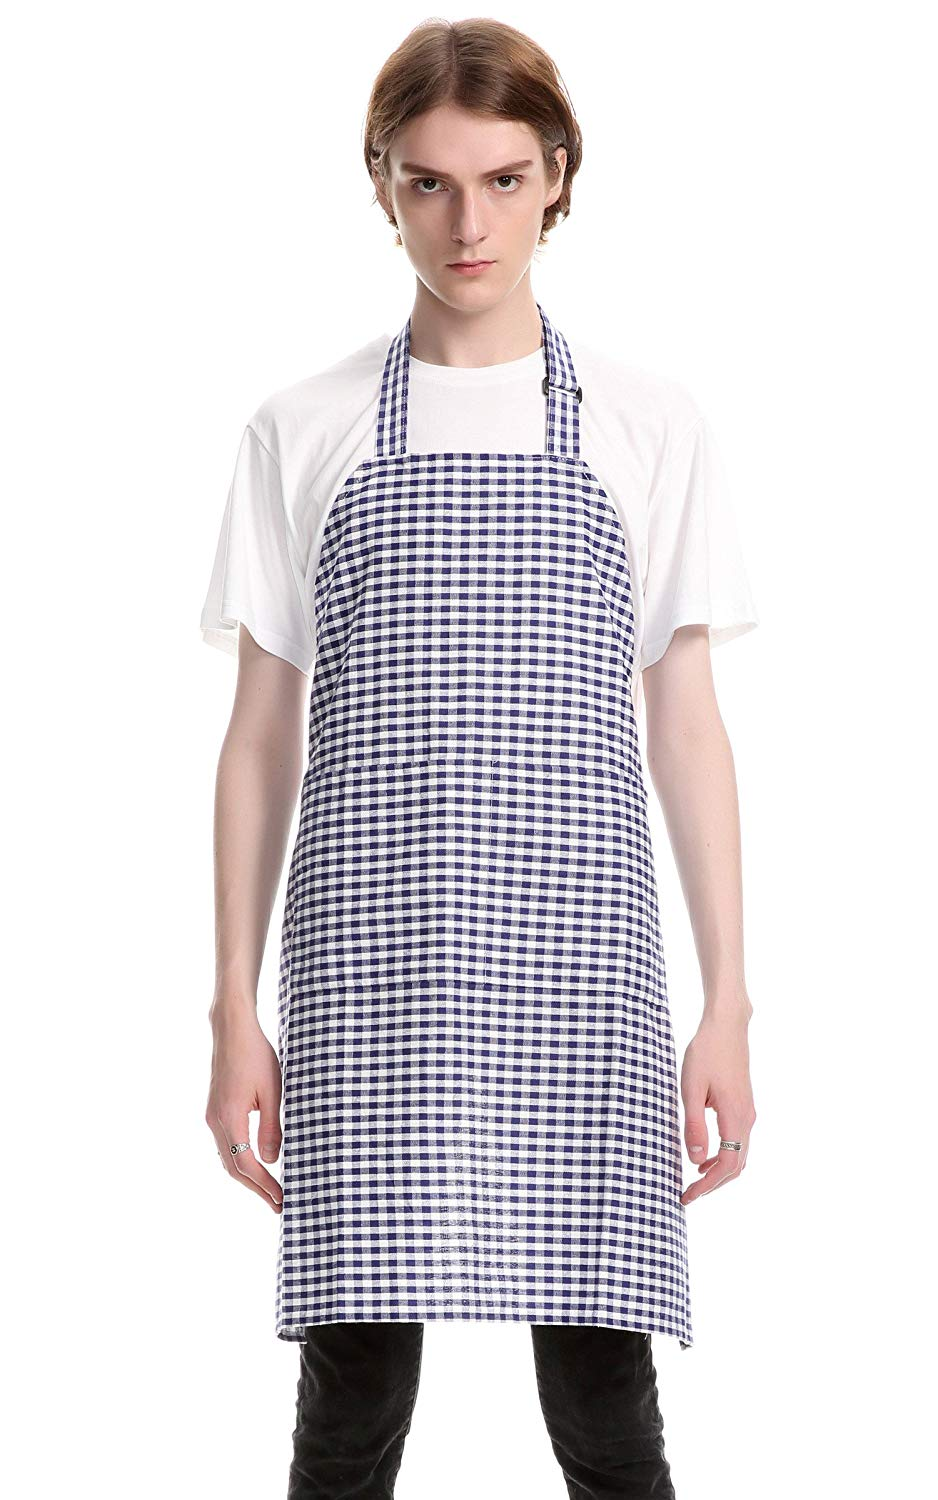 Vintage Gingham Kitchen Aprons Chef Bib Canvas Aprons Christmas Holiday Home Decorative 100% Pure Cotton Aprons in Large Size with Pockets with Pockets by Jennice House(Navy)